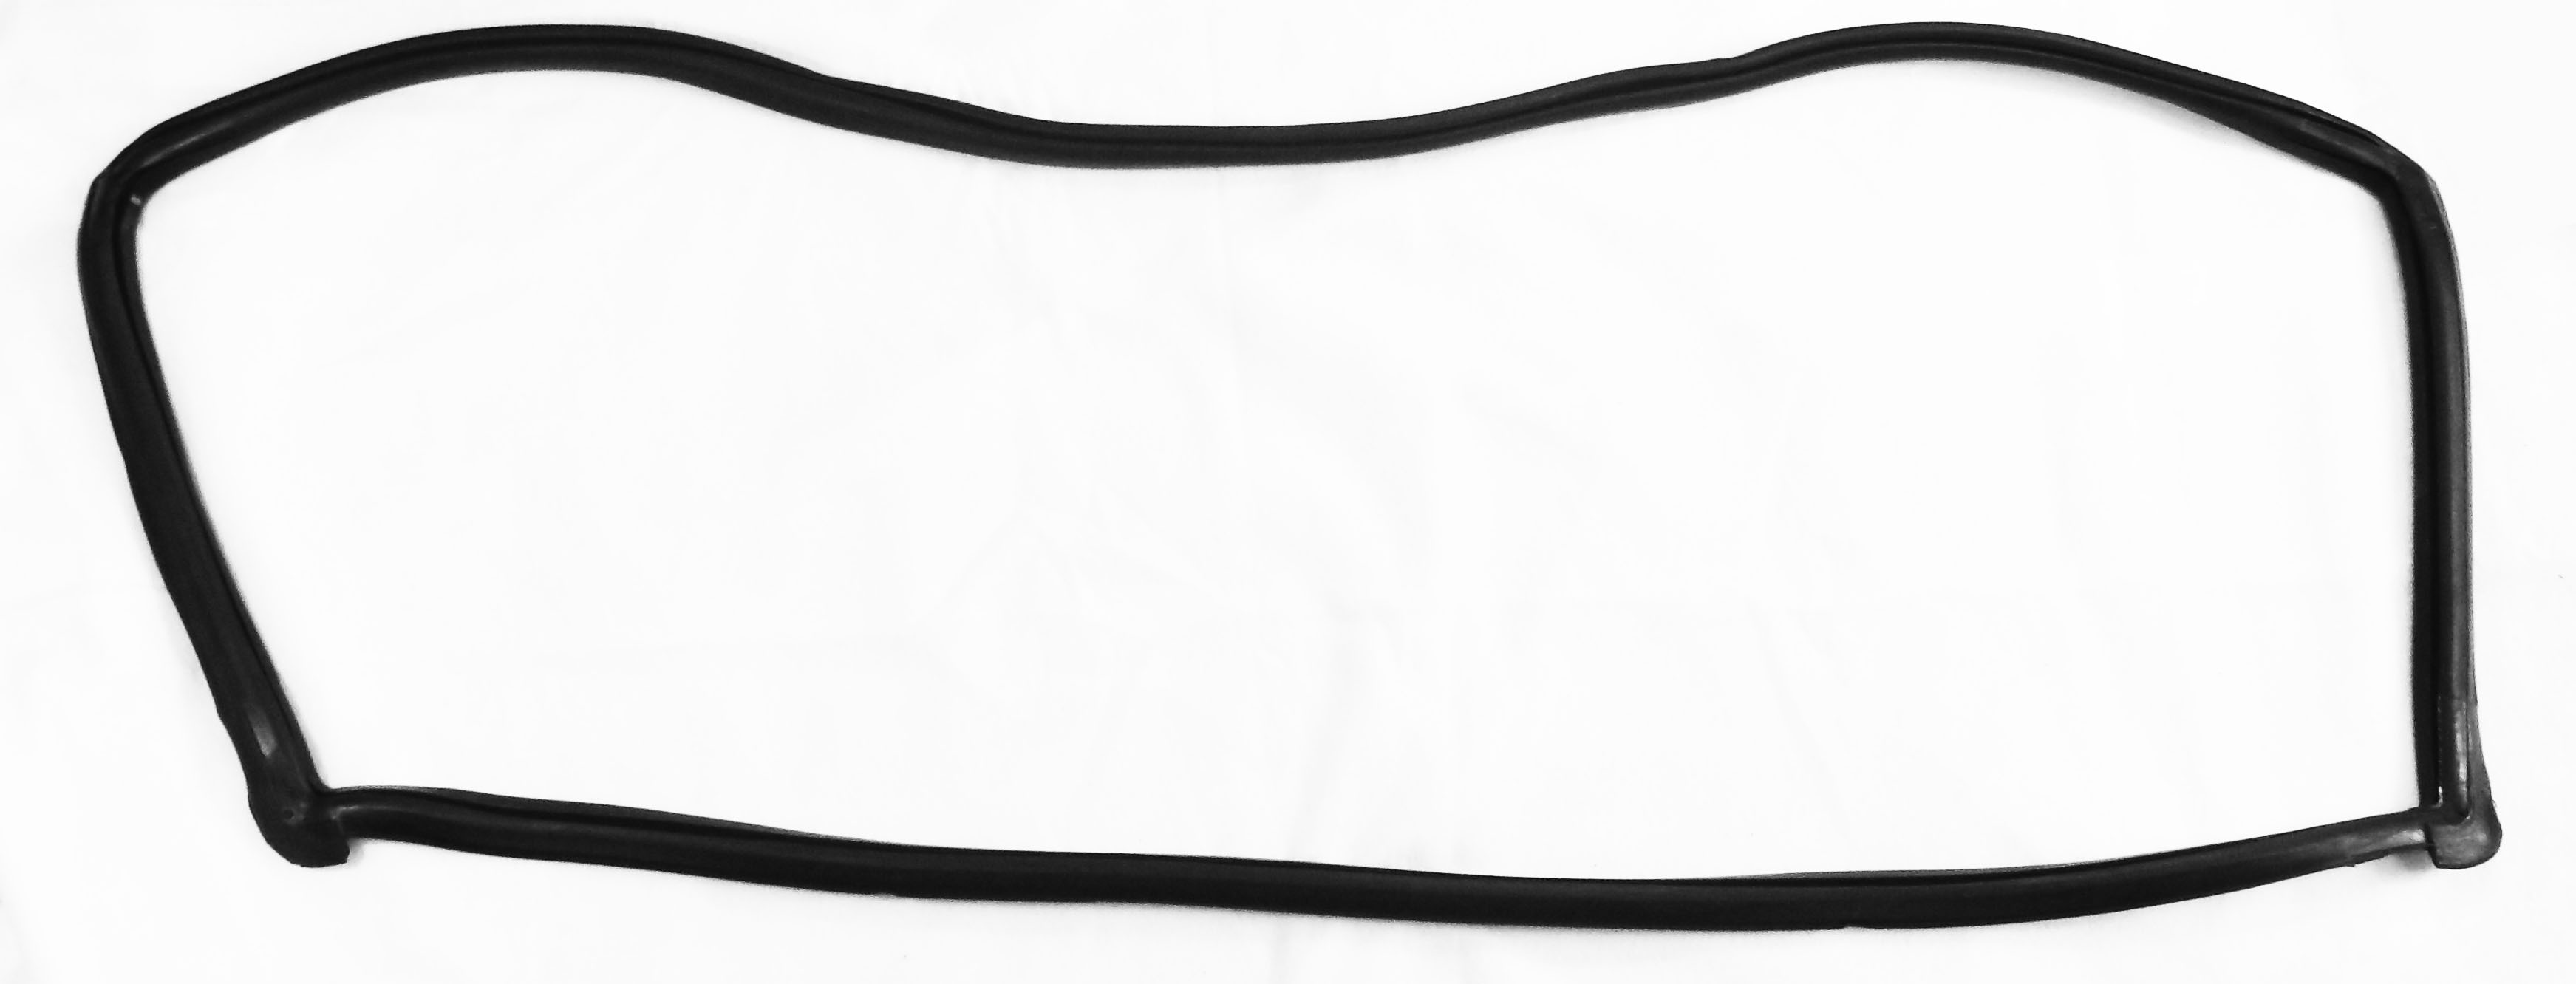 Windshield Channel For 1955-1957 Chevrolet Convertible.